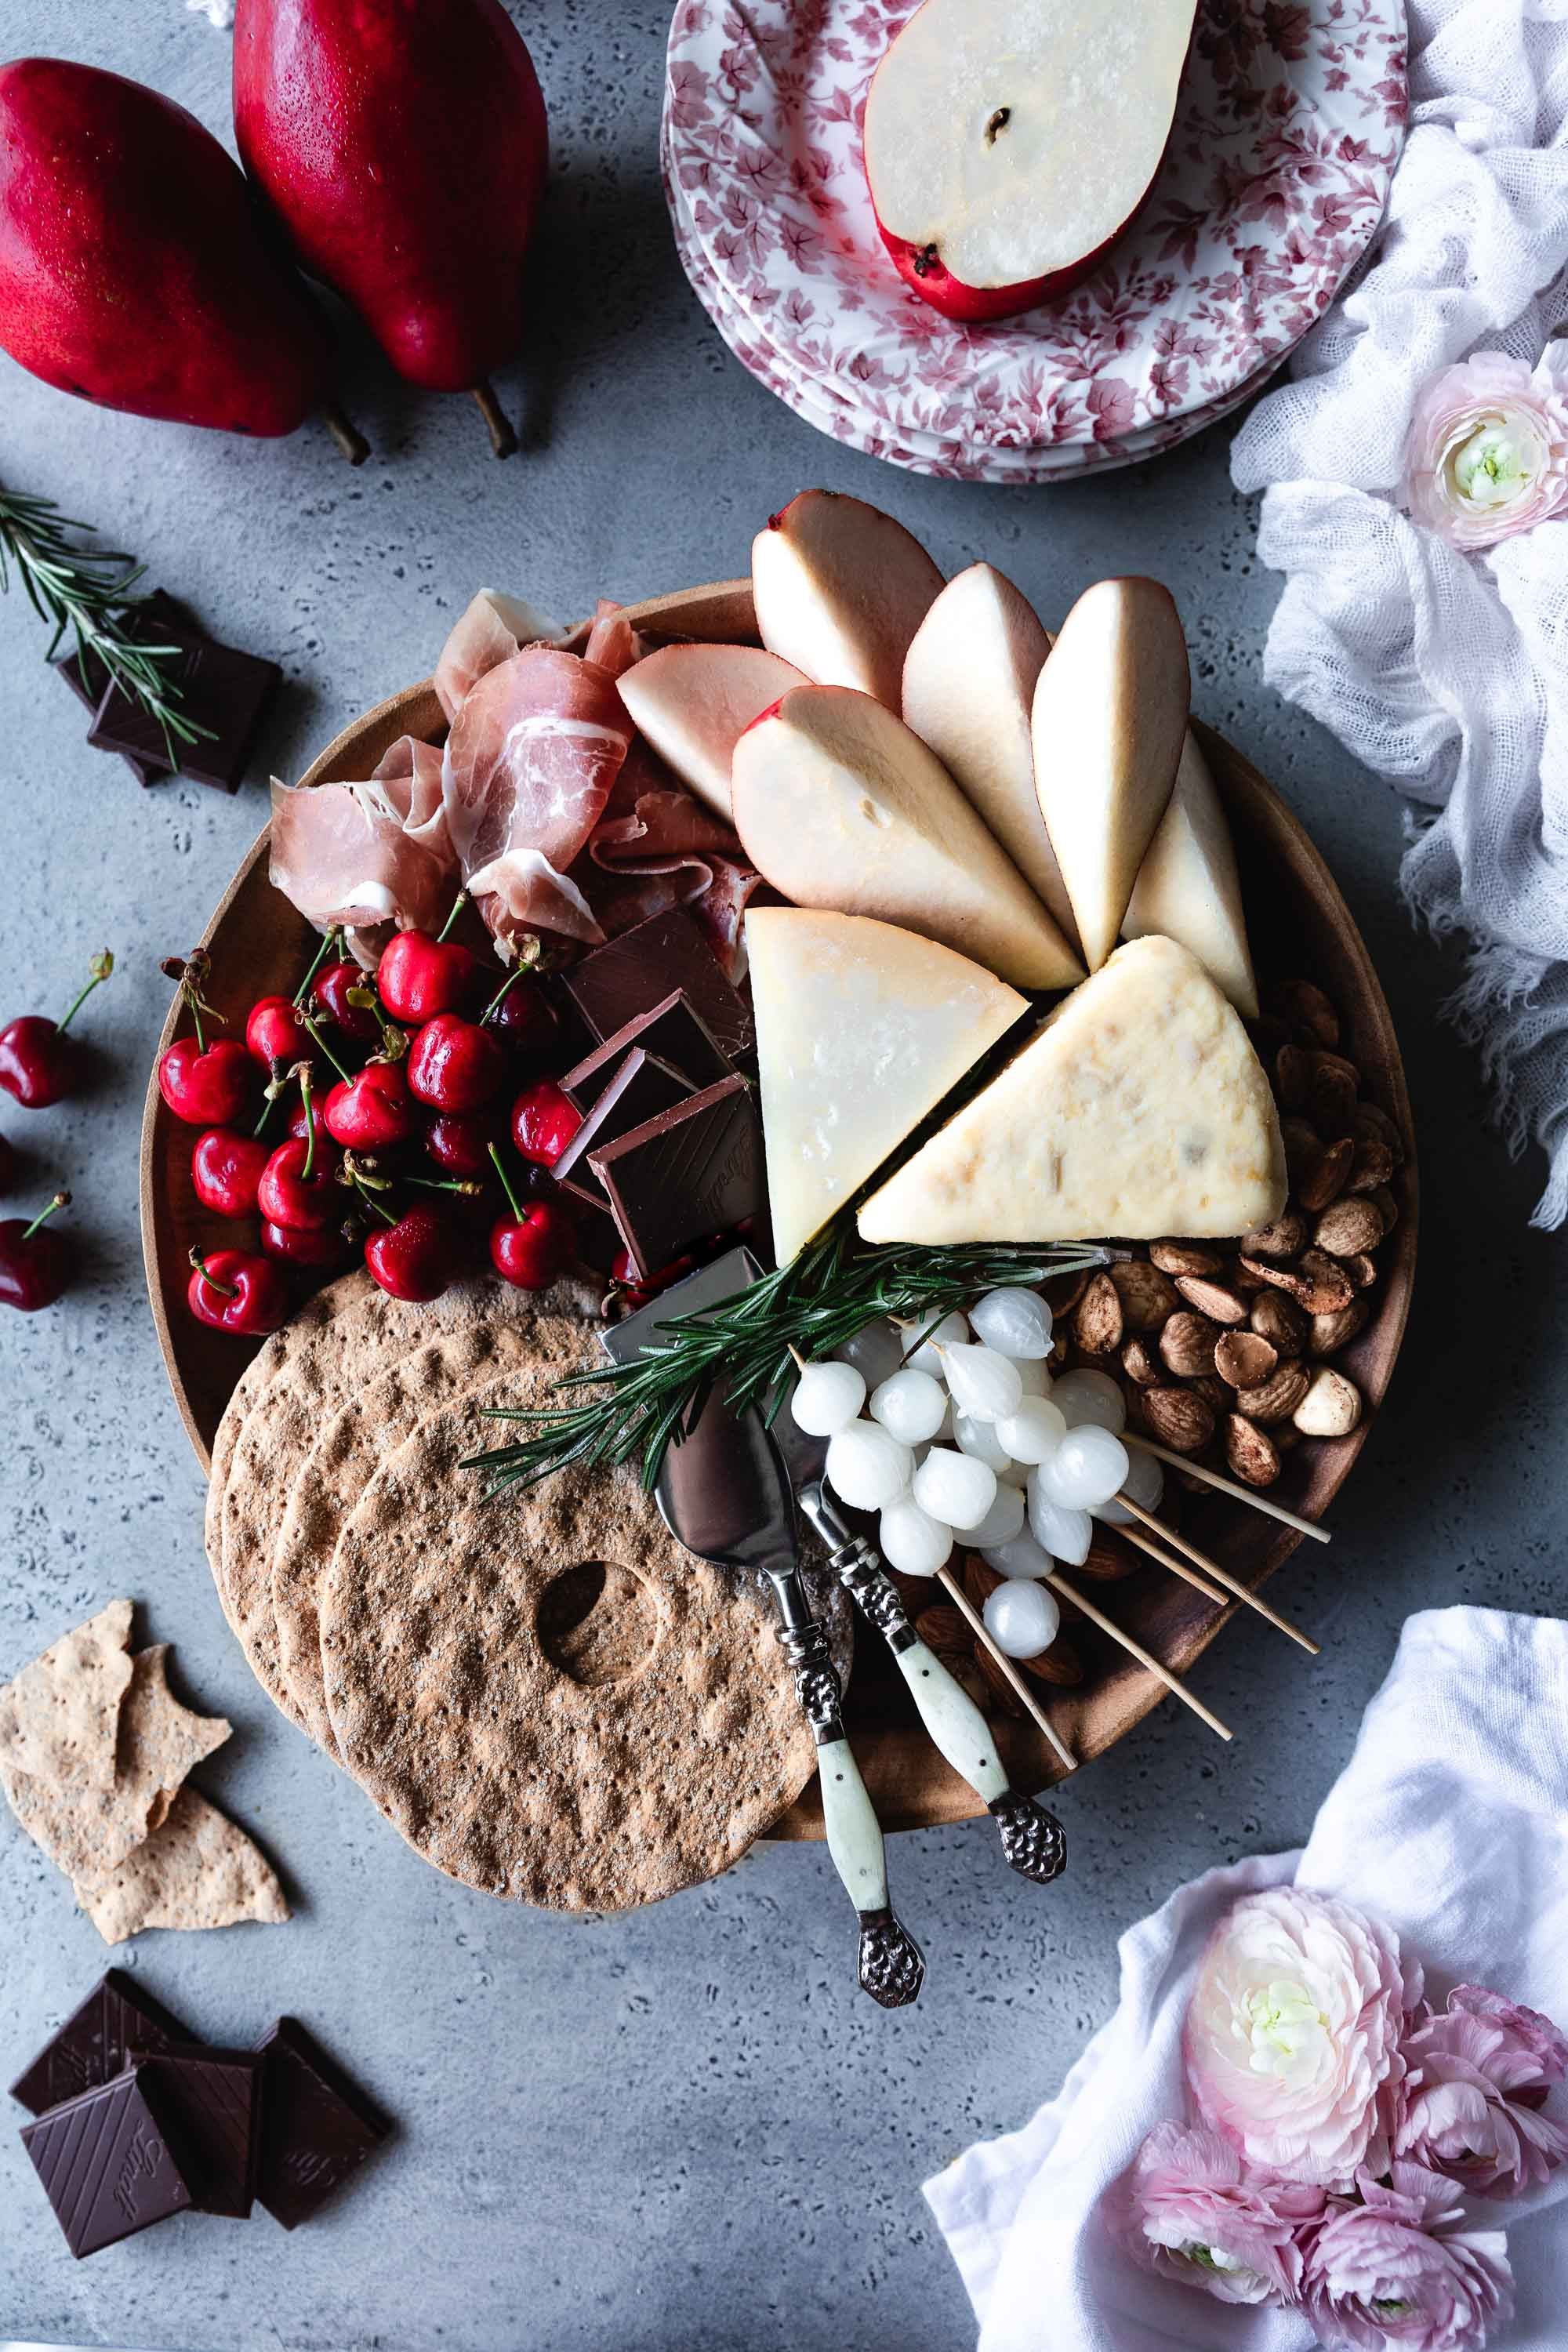 (A cheese tray with Manchego, stilton, prosciutto, cherries, red pears and spicy dark chocolate with chilli fakes)